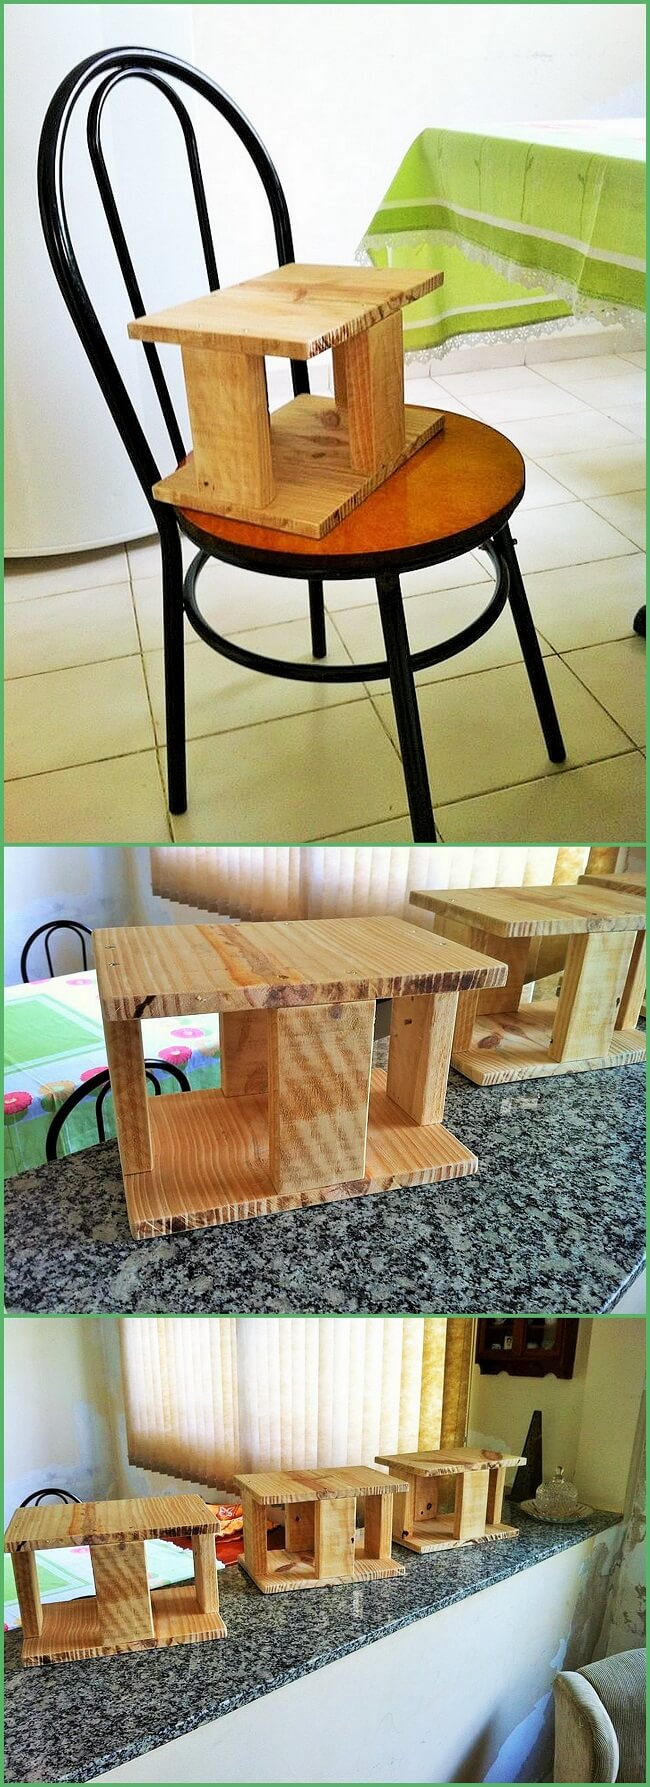 Home Decor with Wooden Pallets Furniture-1